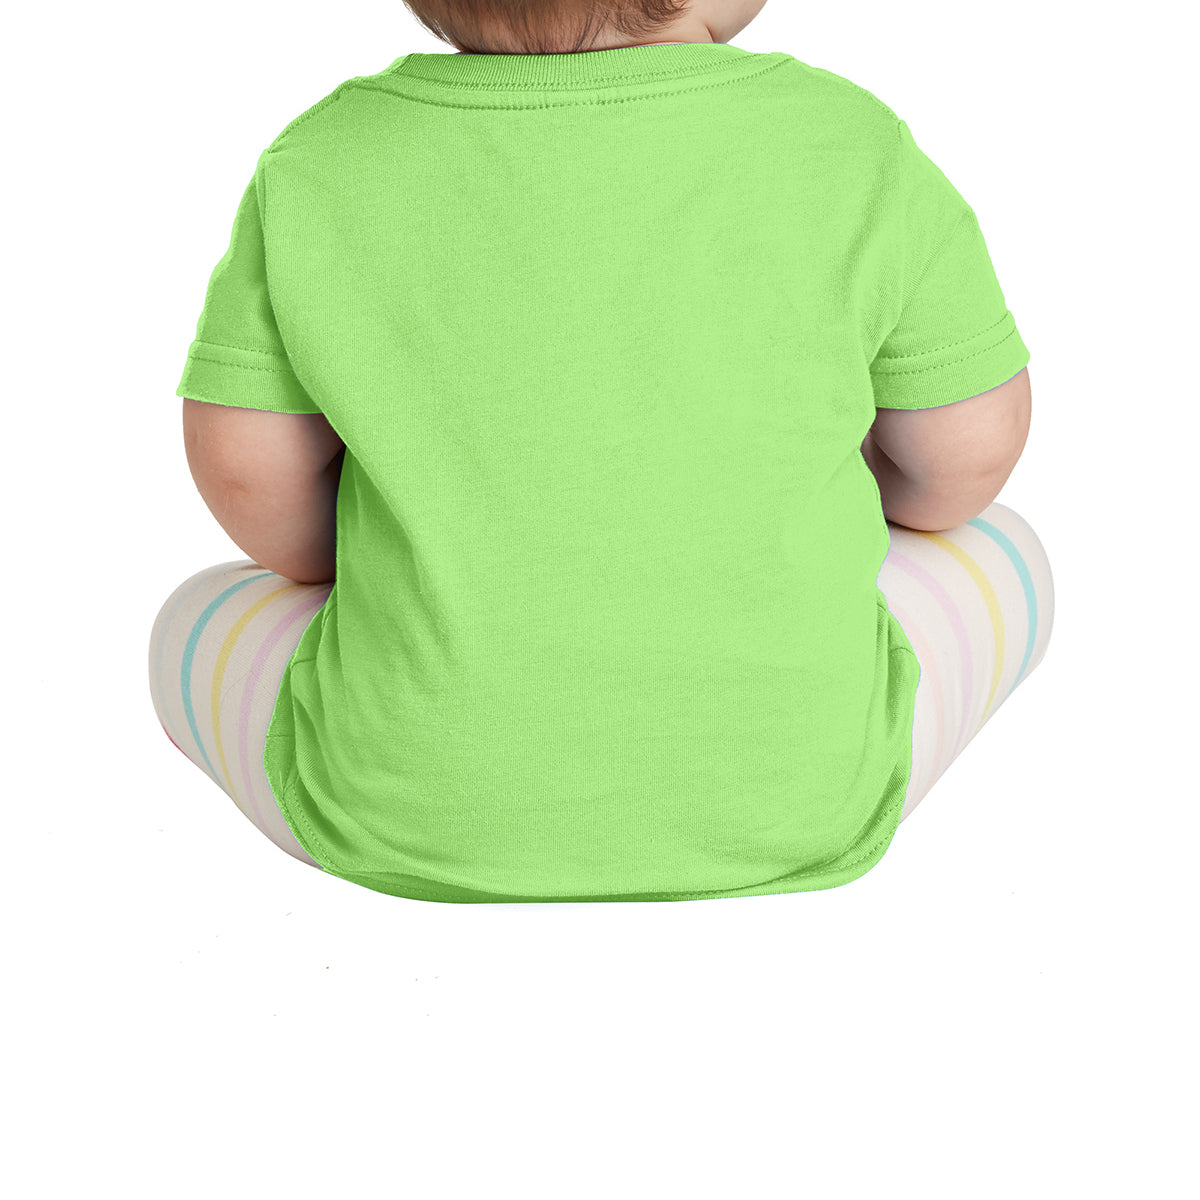 Infant Fine Jersey Tee - Key Lime